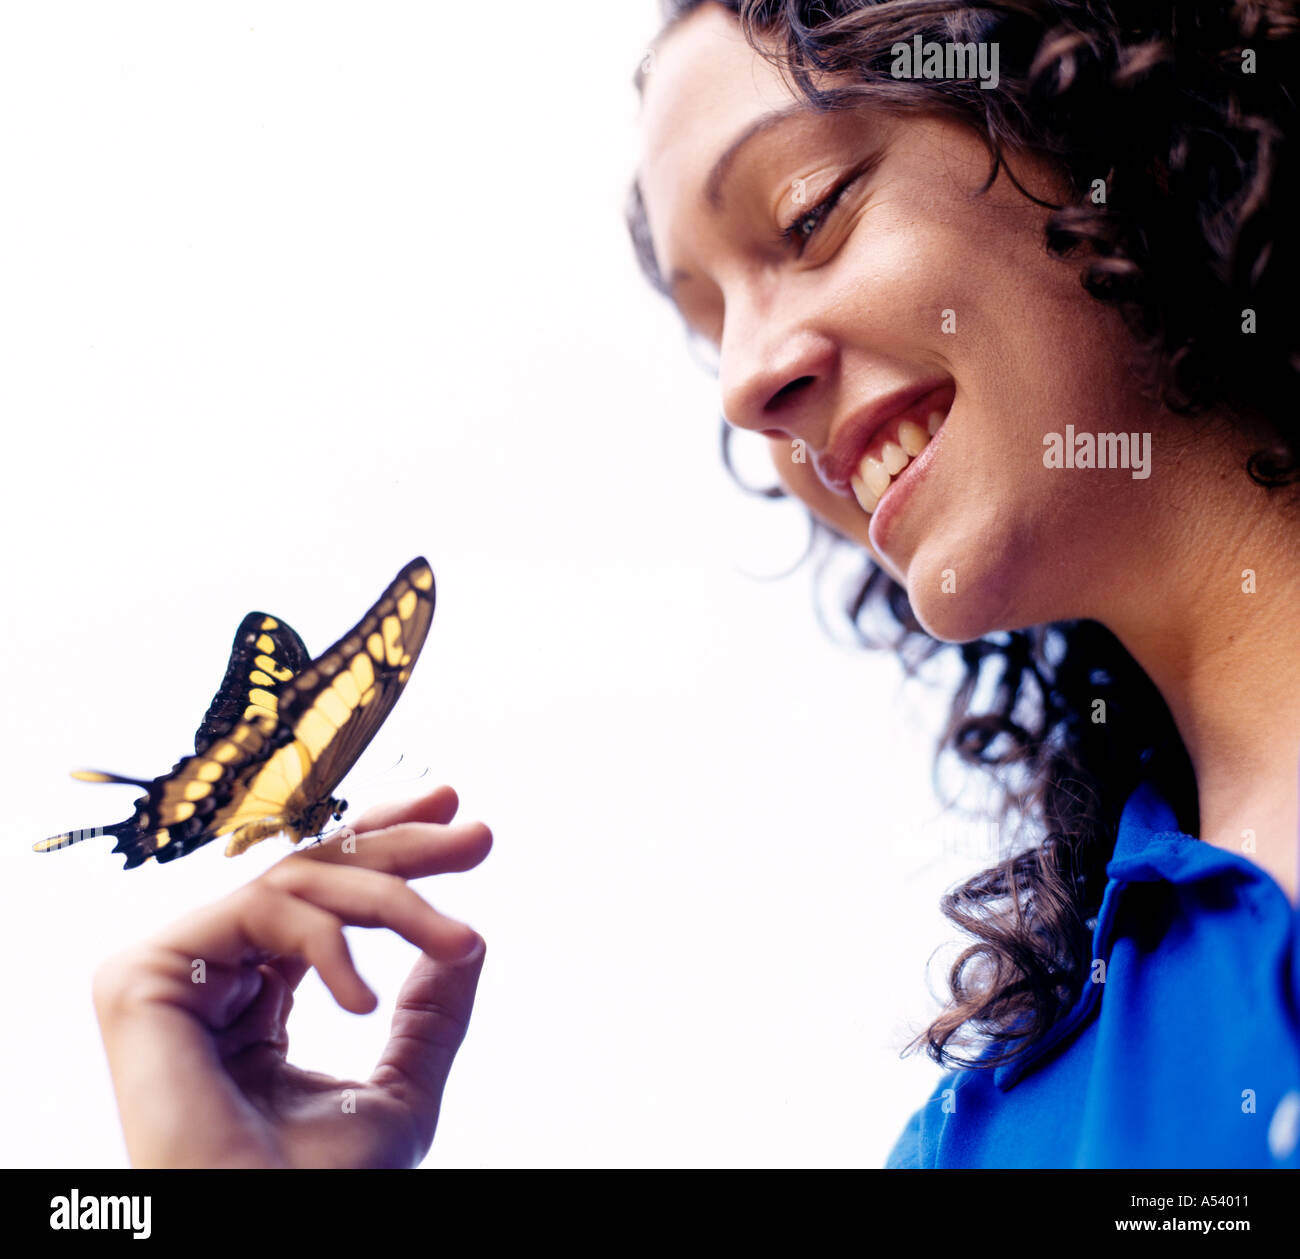 Woman with butterfly on hand Photo Stock